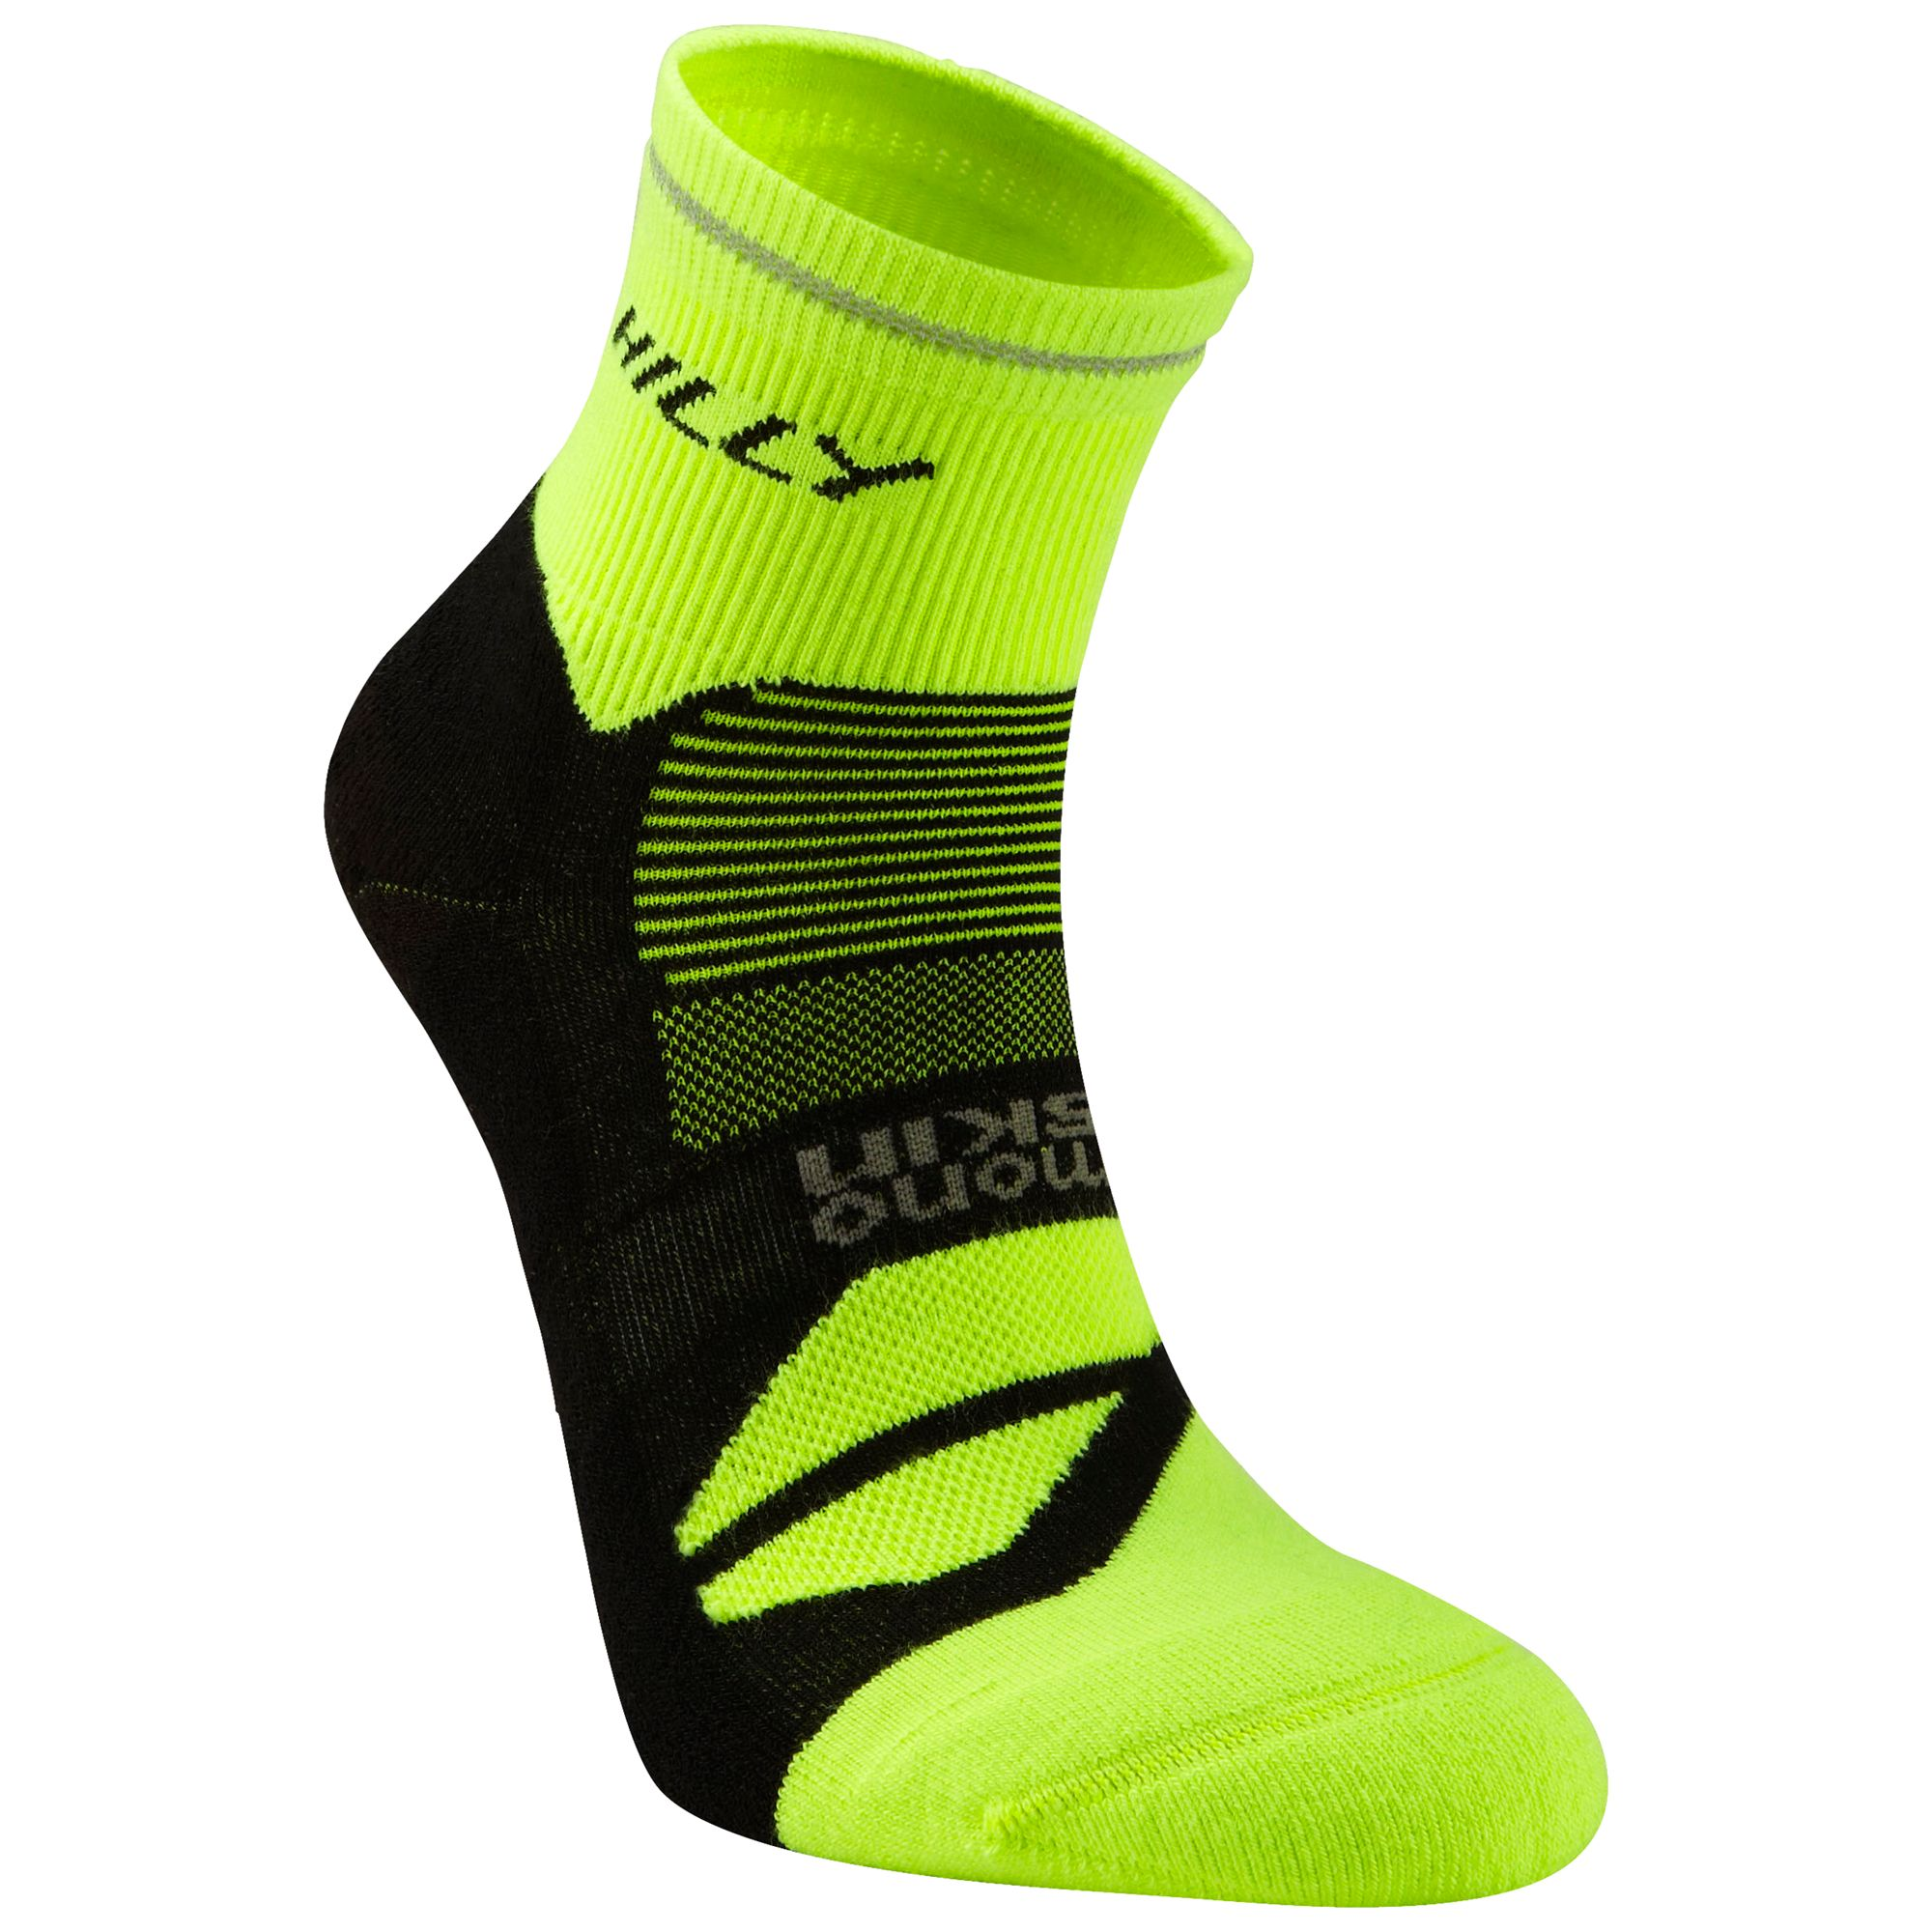 Hilly Hilly Photon Anklet Running Socks, Yellow